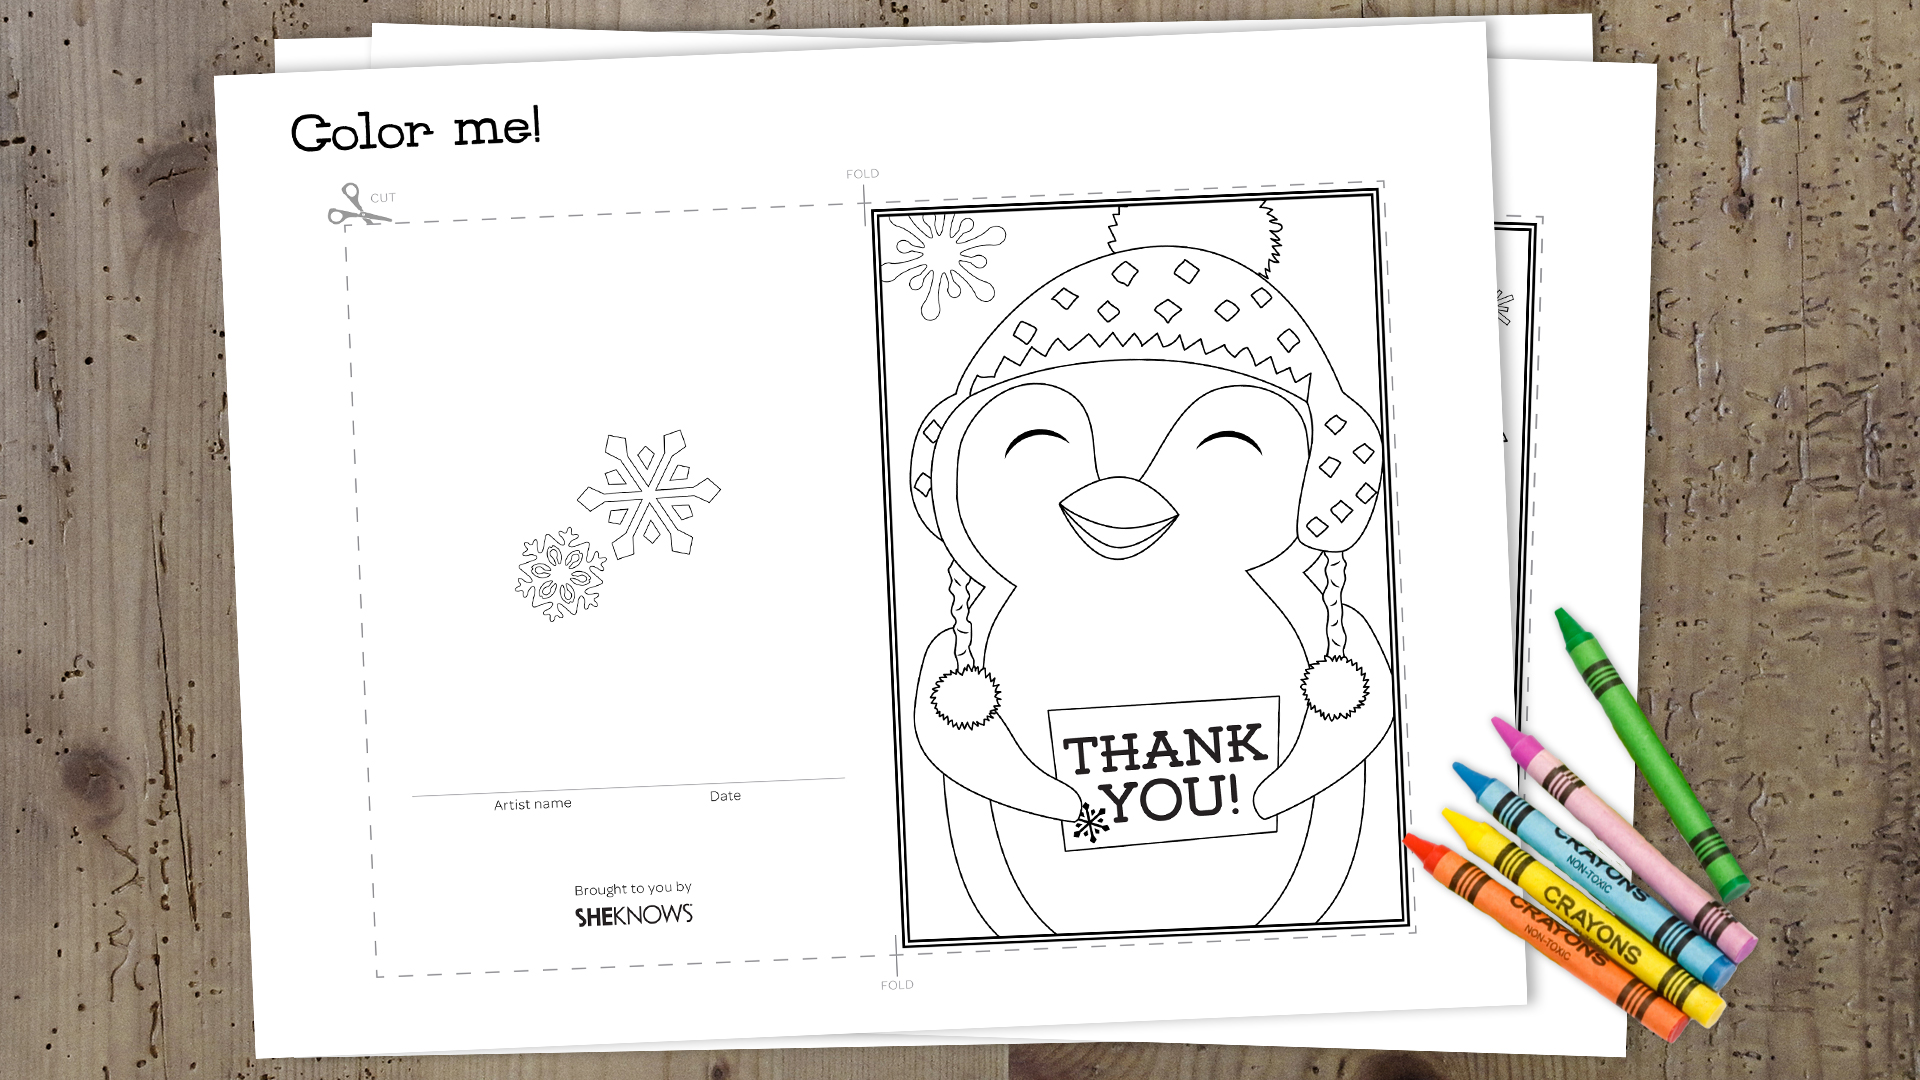 Wrap up the holidays with these printable 'thank you' cards for kids: www.sheknows.com/parenting/articles/1055275/printable-holiday-thank...